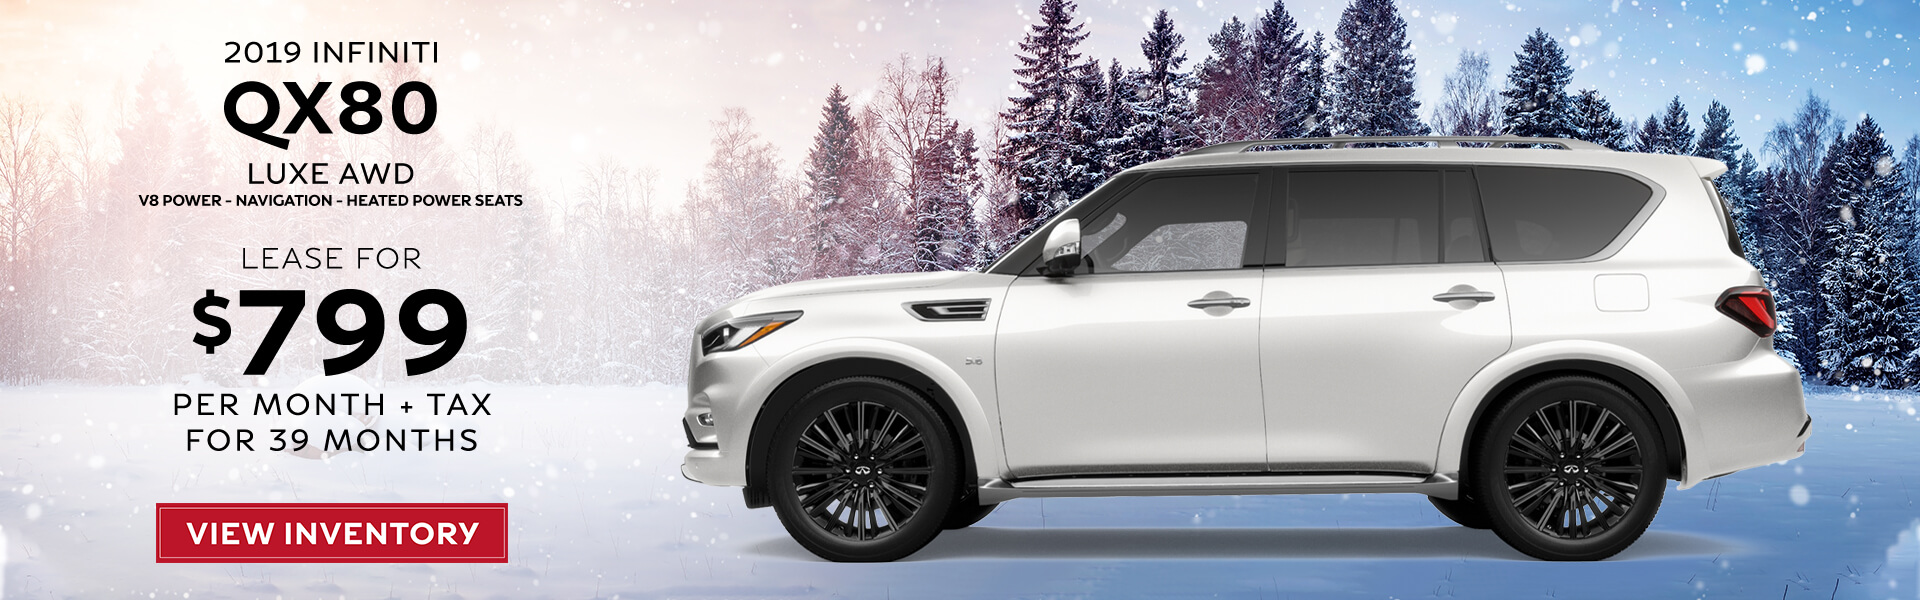 QX80 - Lease for $799